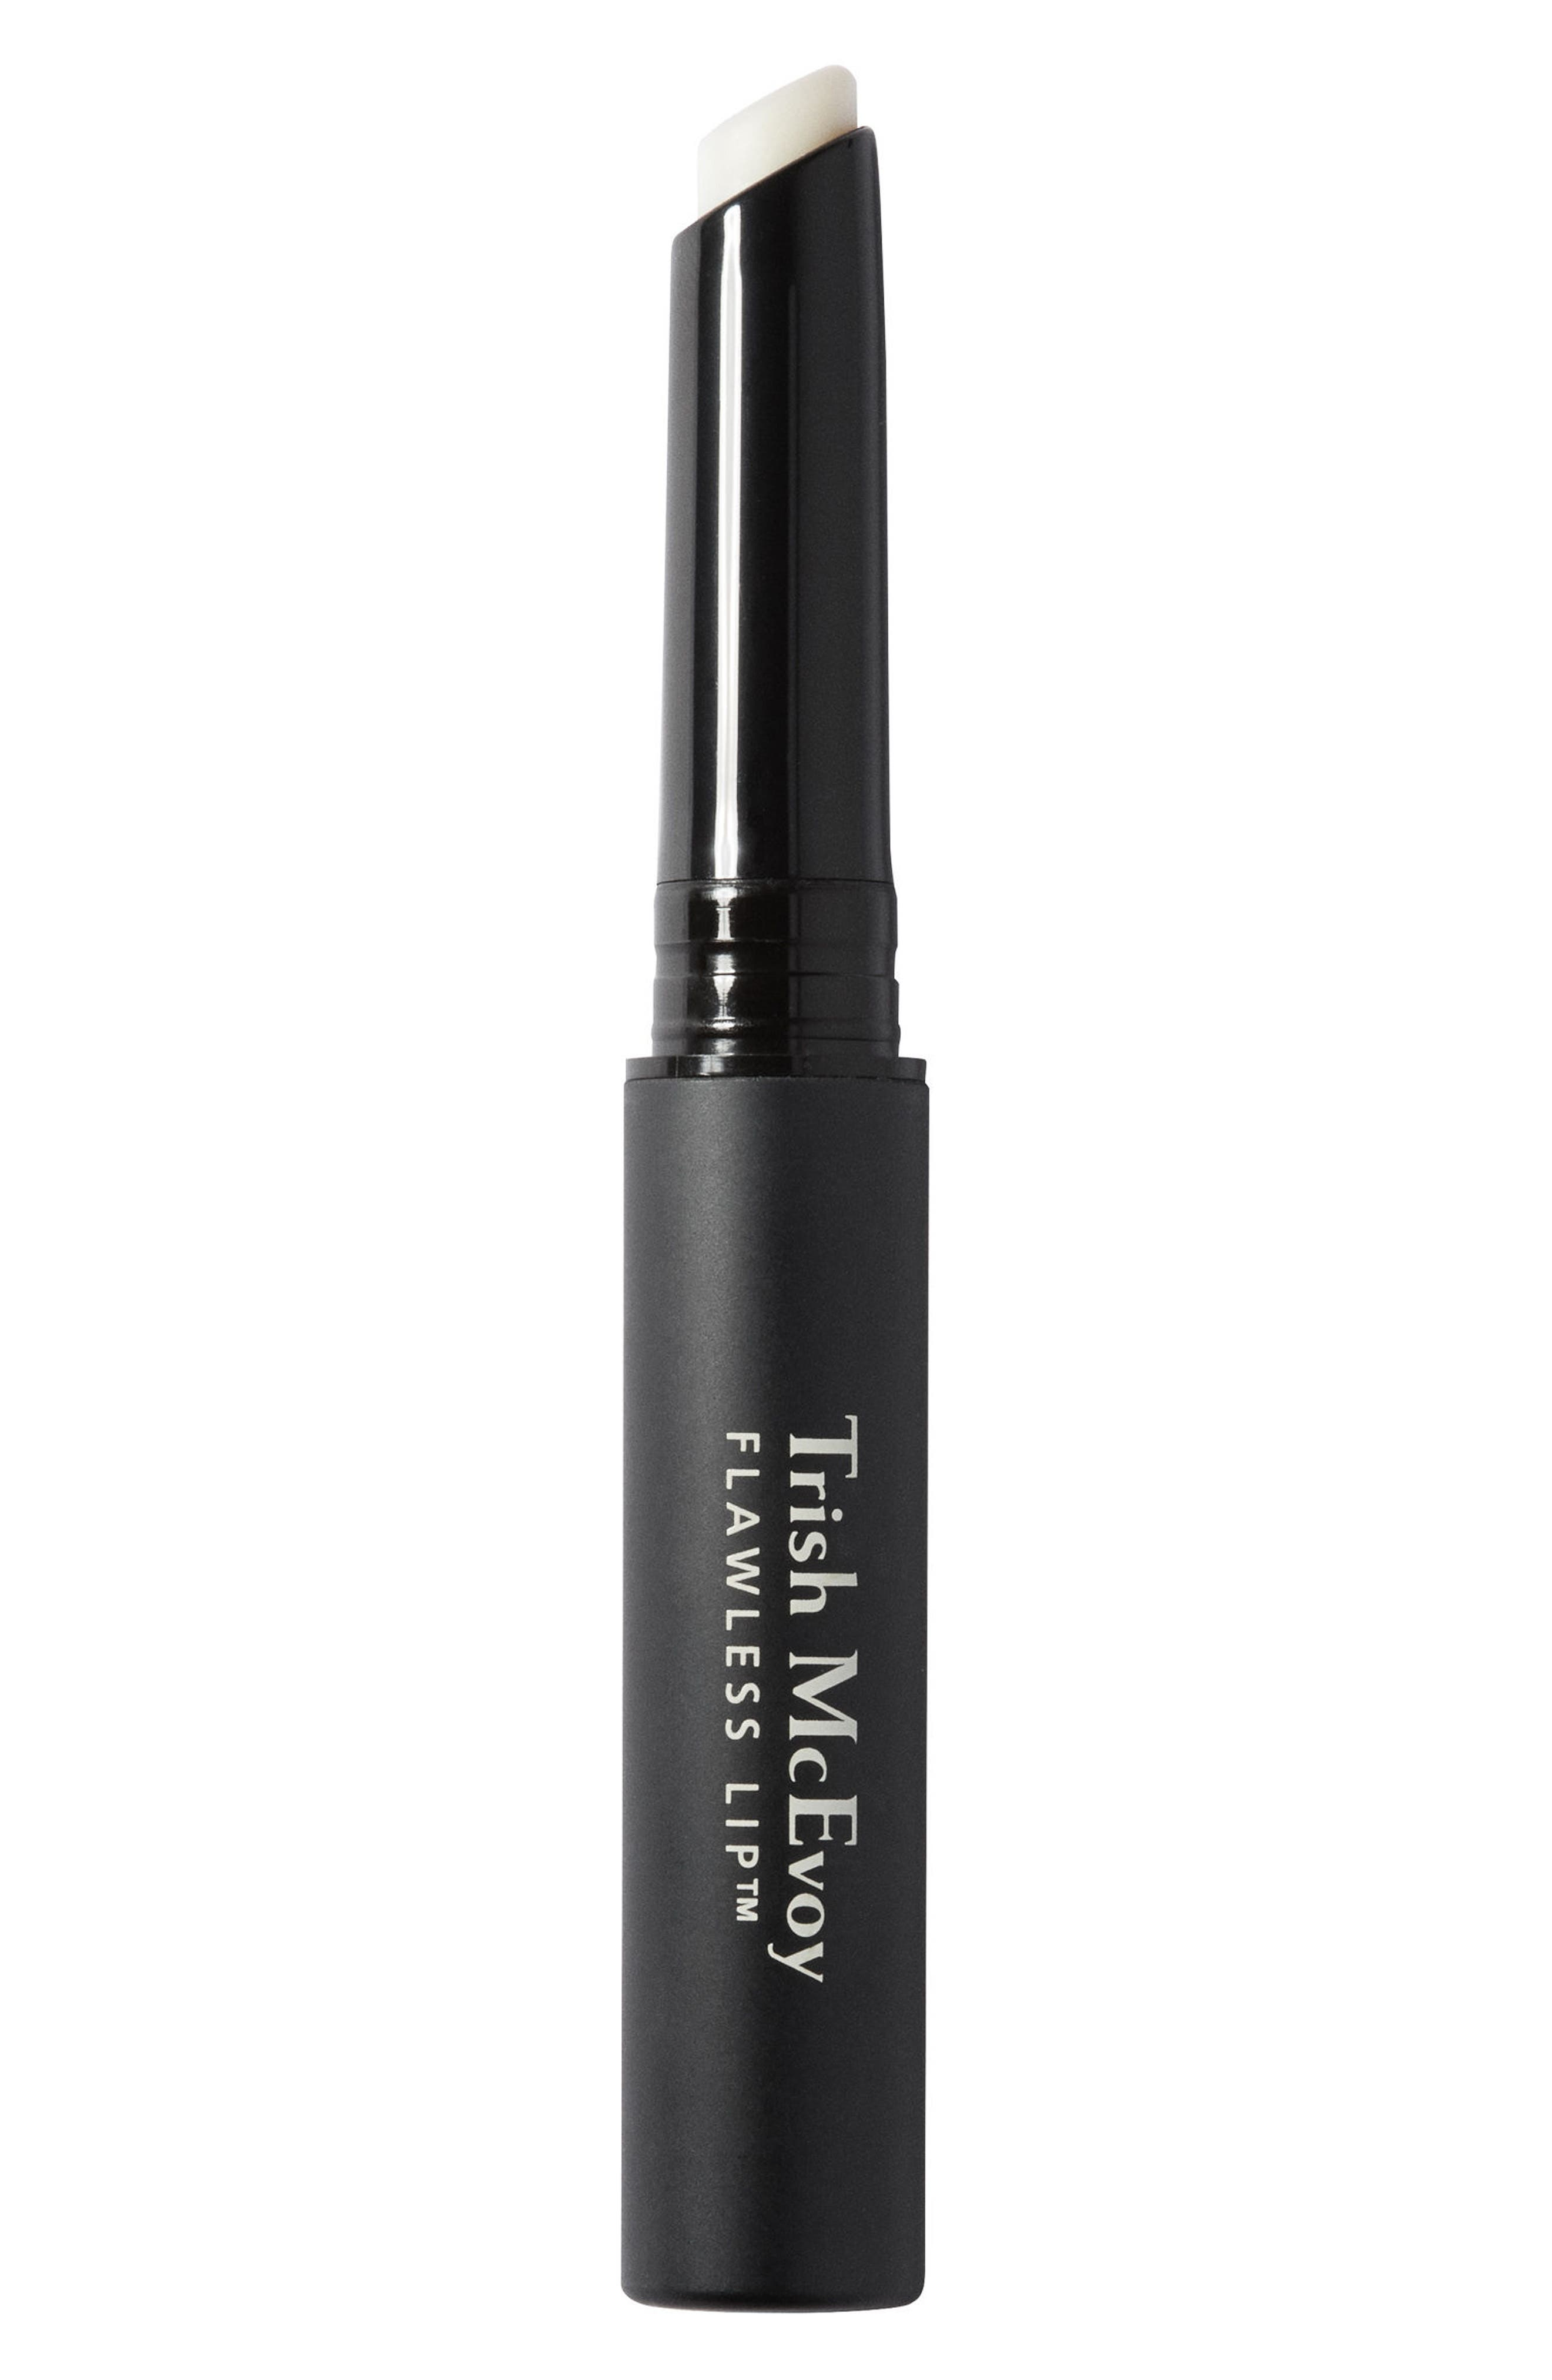 Flawless Lip Primer,                             Main thumbnail 1, color,                             000